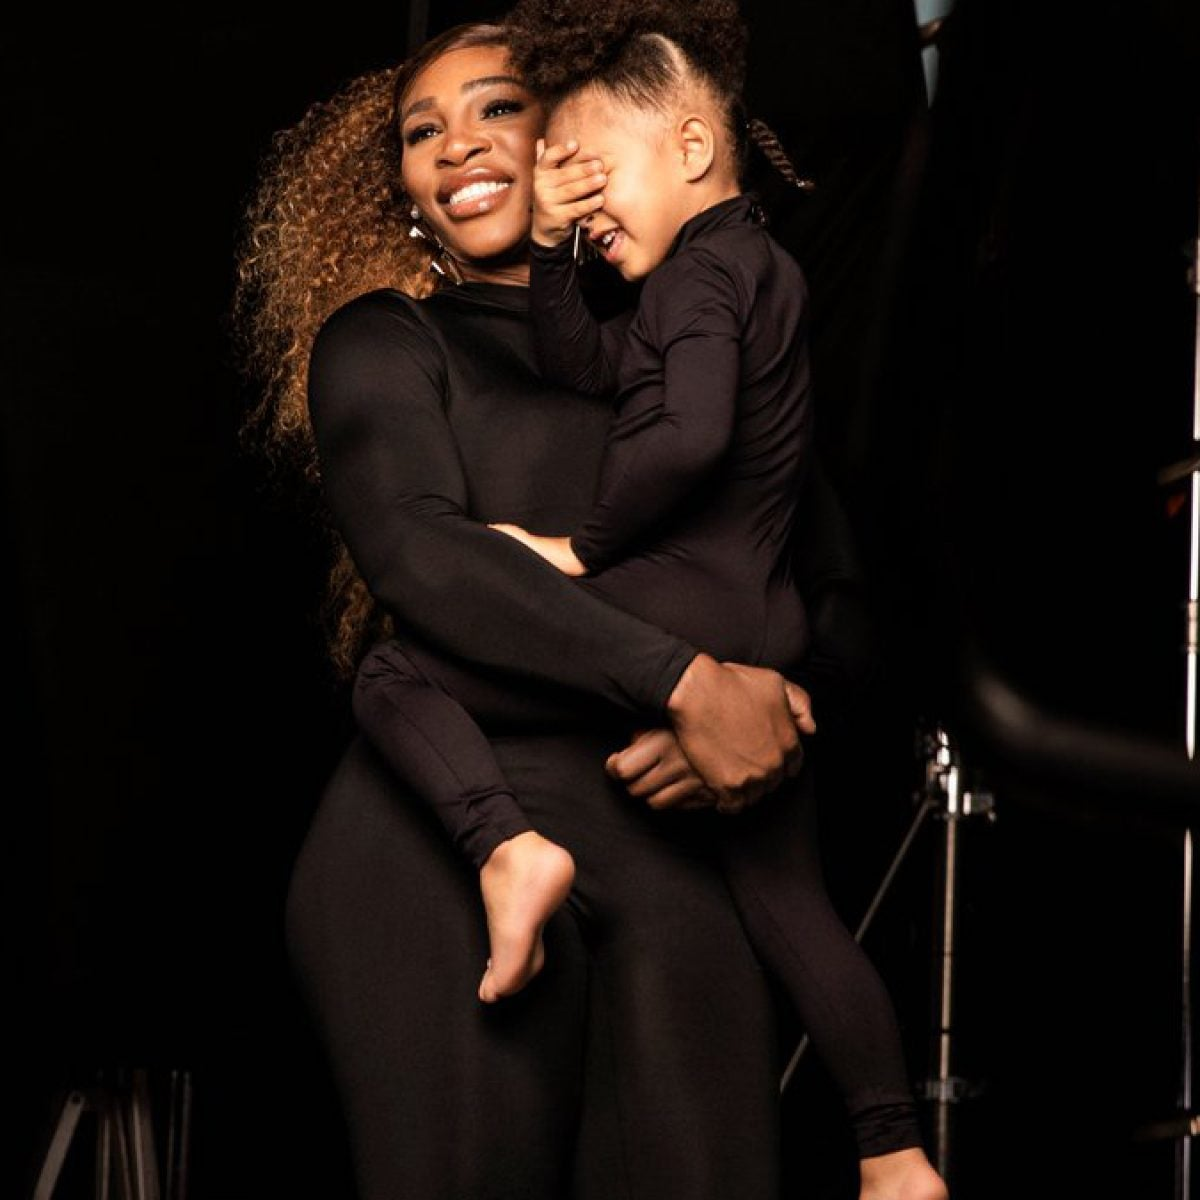 Serena Williams And Daughter Olympia Star In First Fashion Campaign Together For Stuart Weitzman